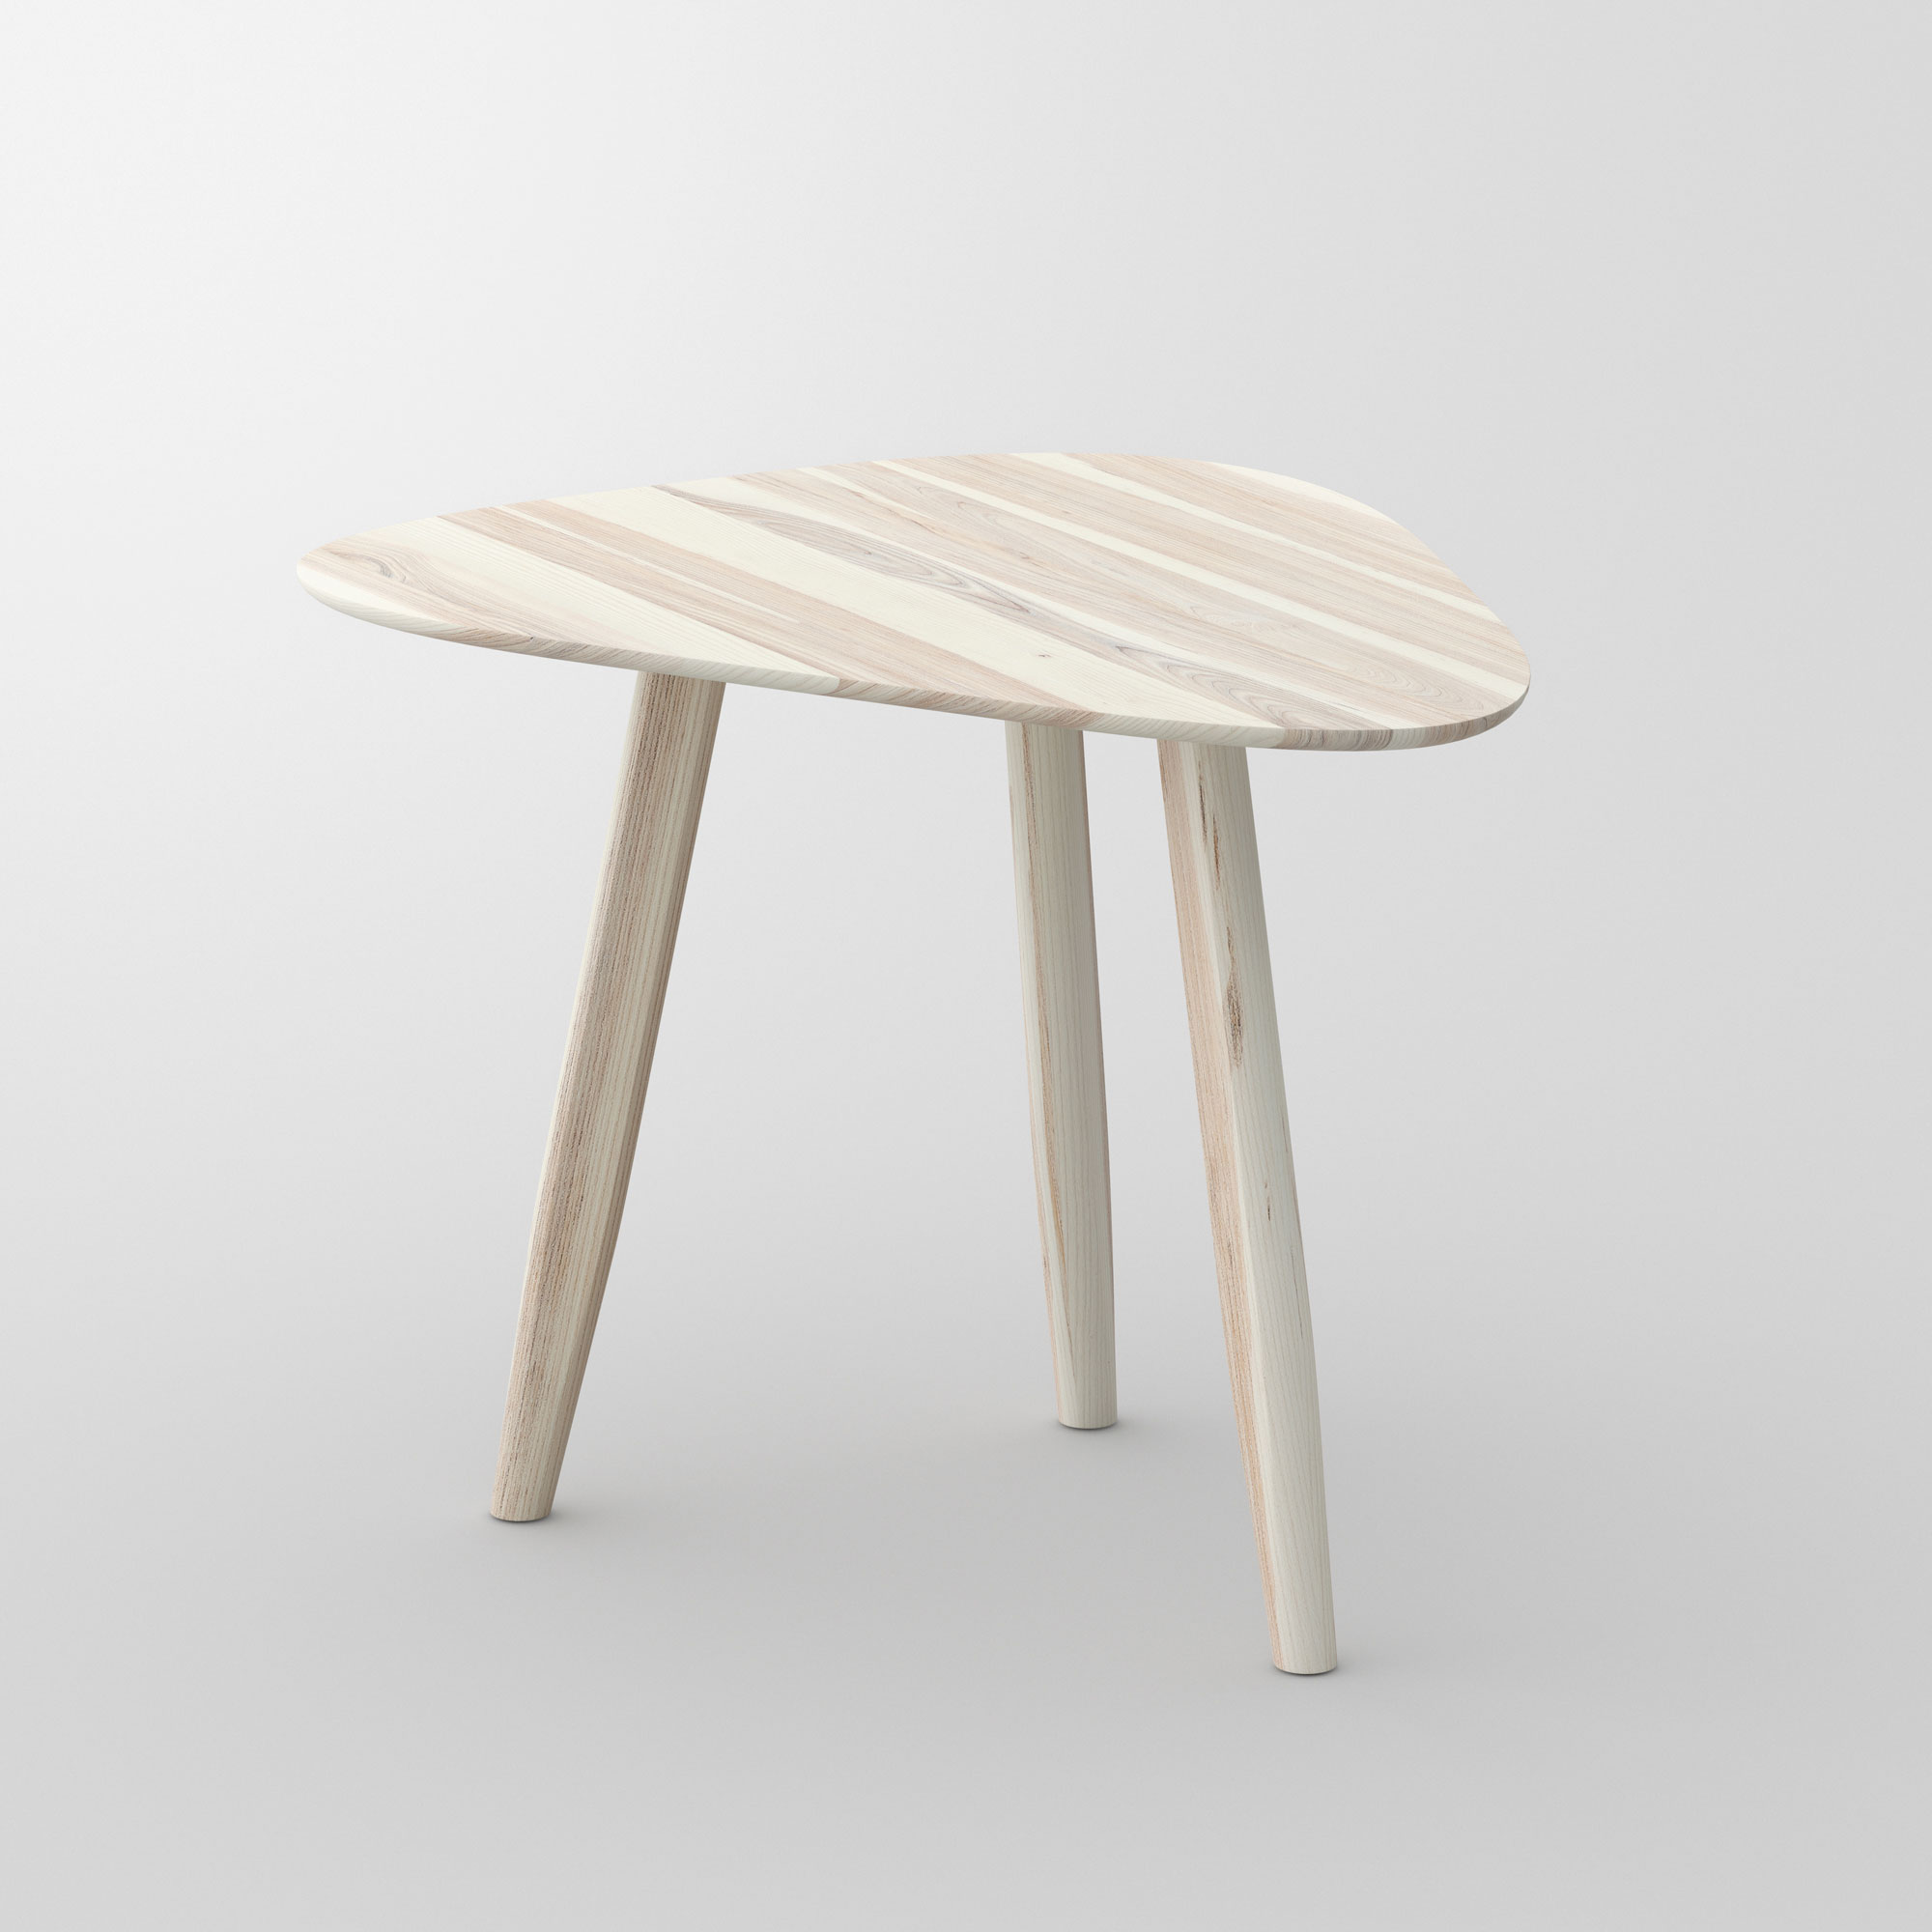 Designer Conference Table AETAS SPACE vitamin-design custom made in solid wood by vitamin design